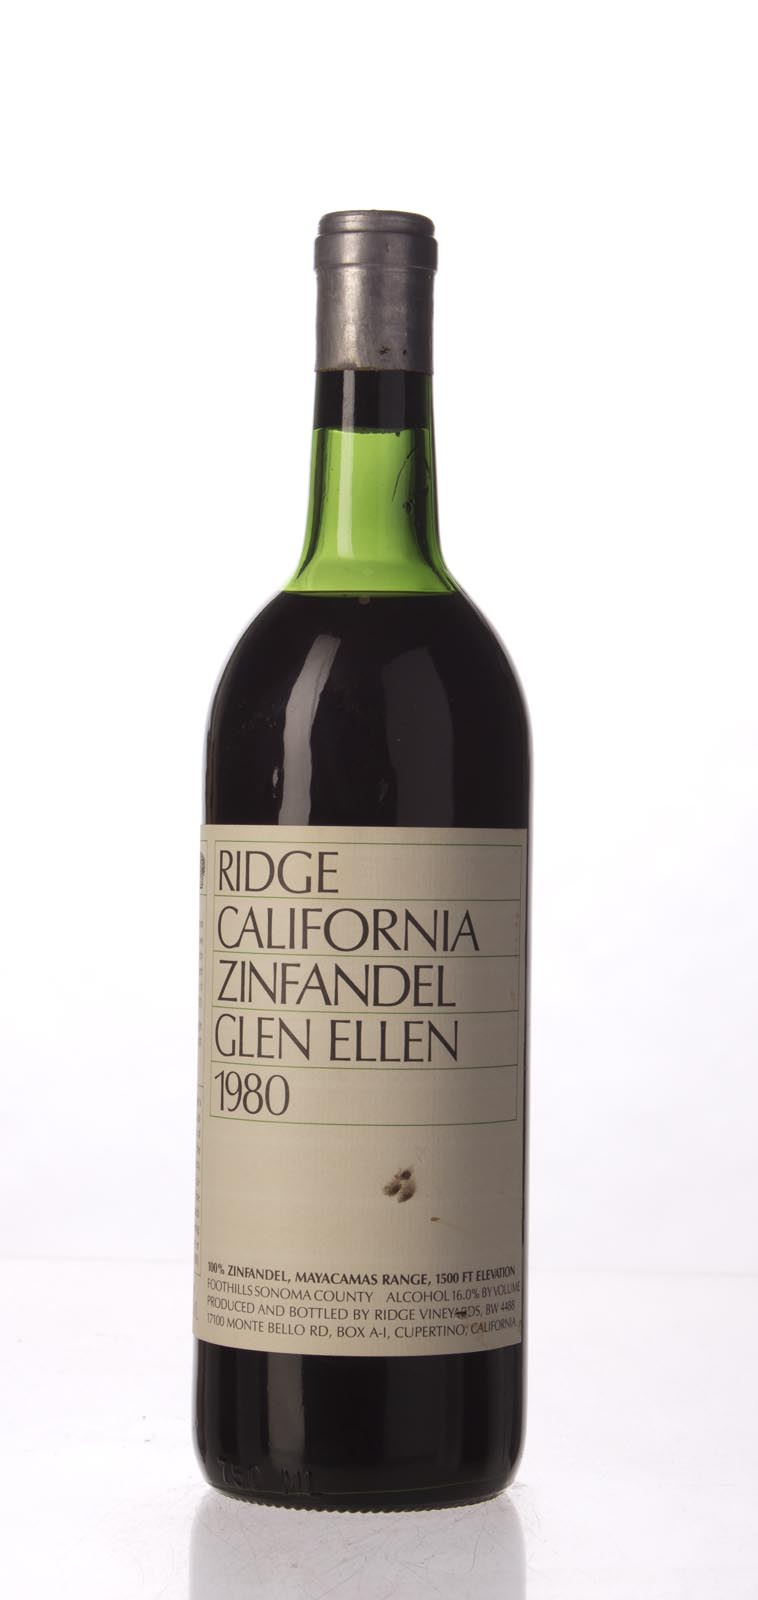 Ridge Zinfandel Glen Ellen 1980, 750mL () from The BPW - Merchants of rare and fine wines.